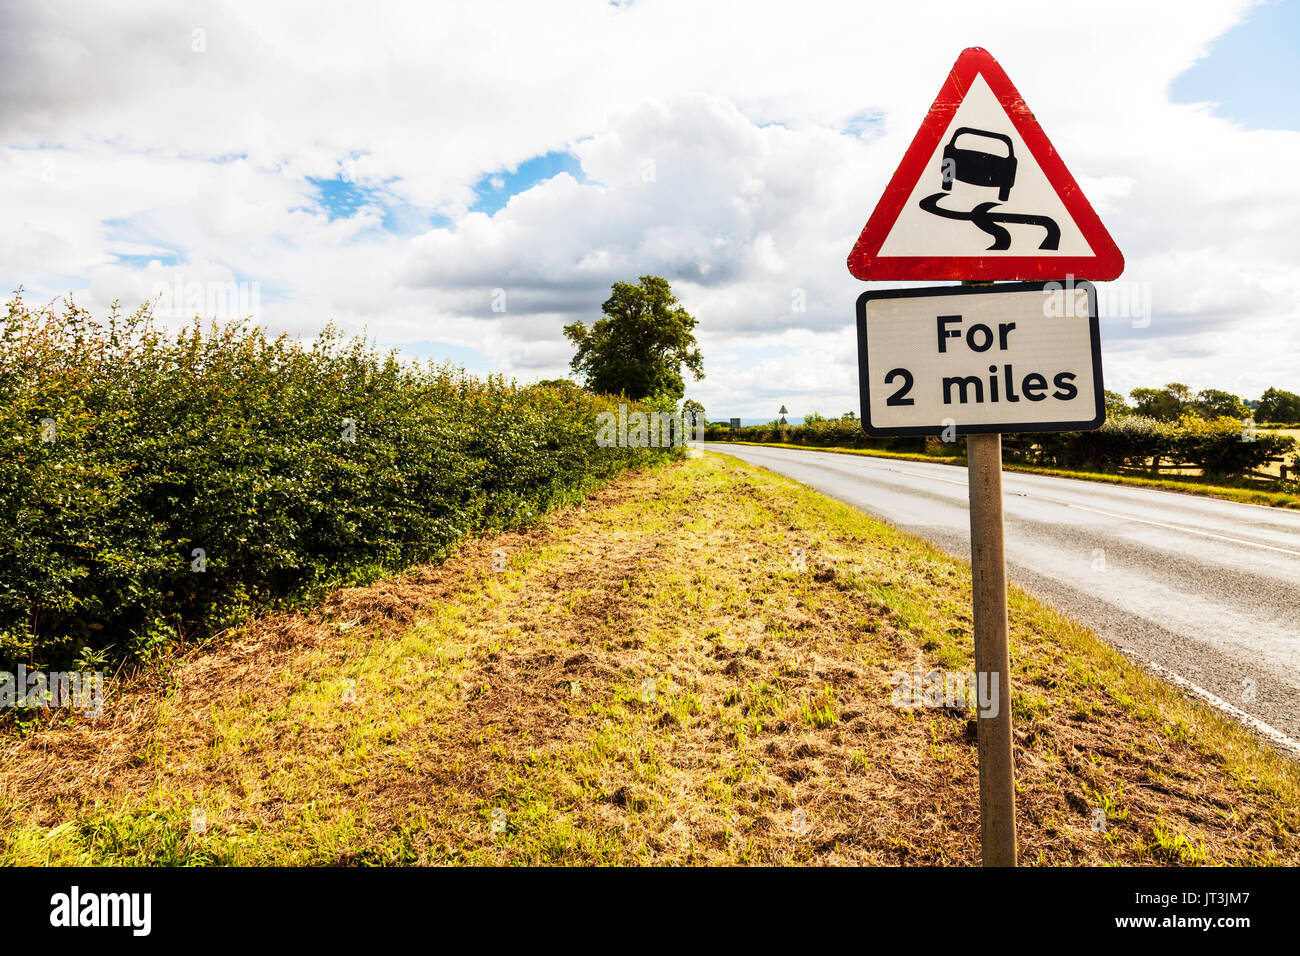 Slippery road, Slippery road UK road sign, for 2 miles, Slippery road for 2 miles, road sign, warning, danger, beware, UK, England, UK road signs - Stock Image